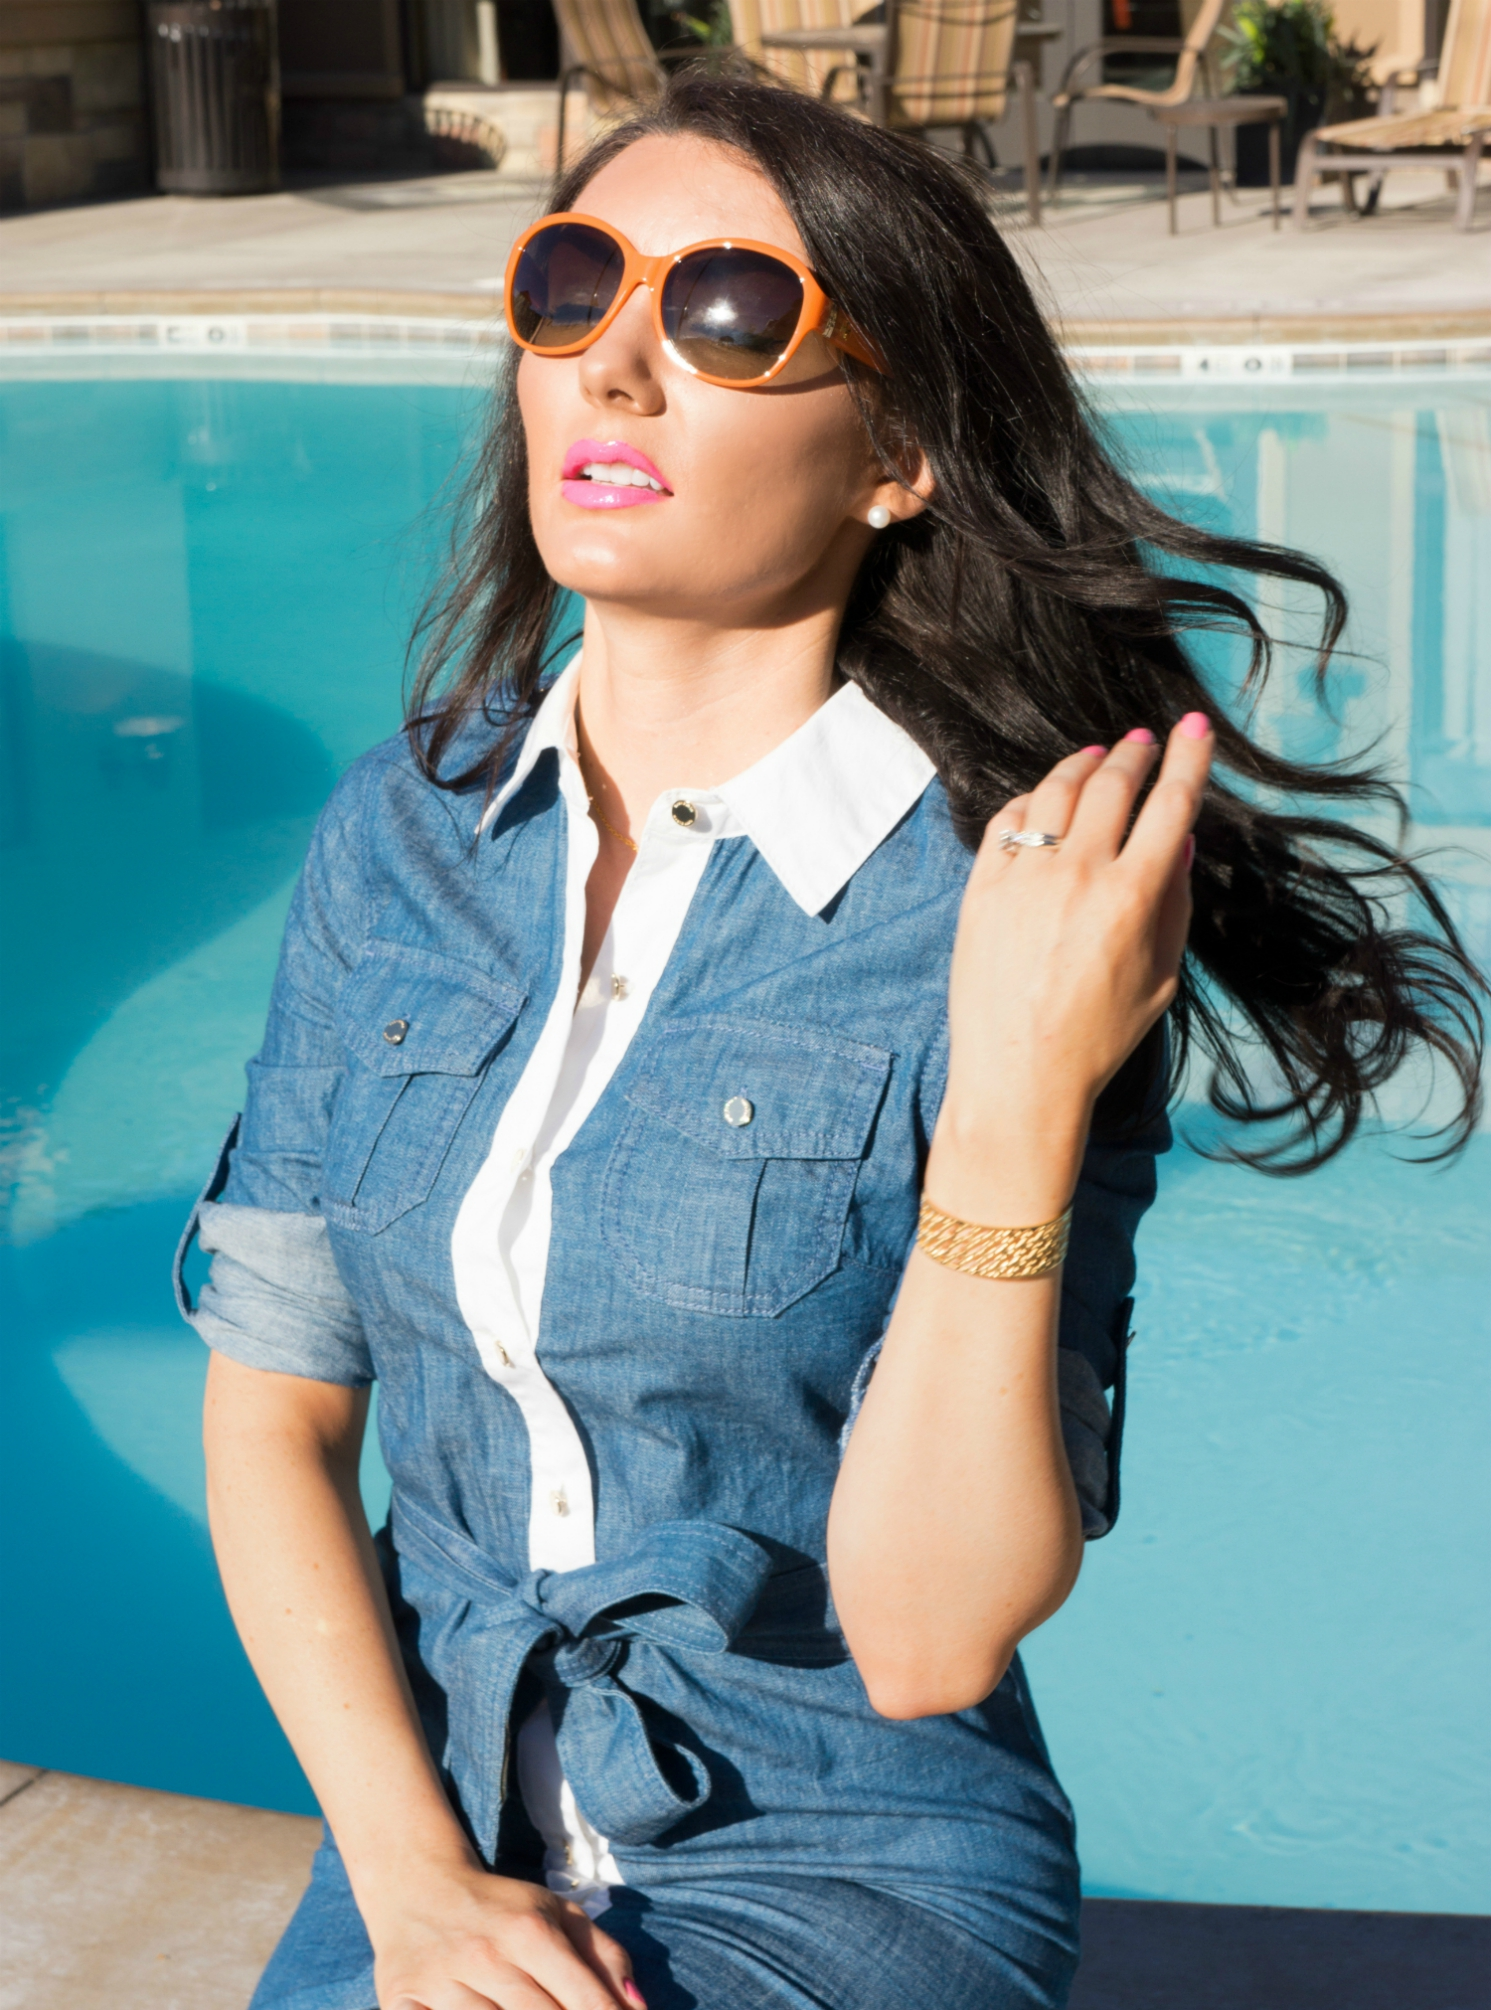 The Sugared Lemon  Tory Burch Orange sunglasses